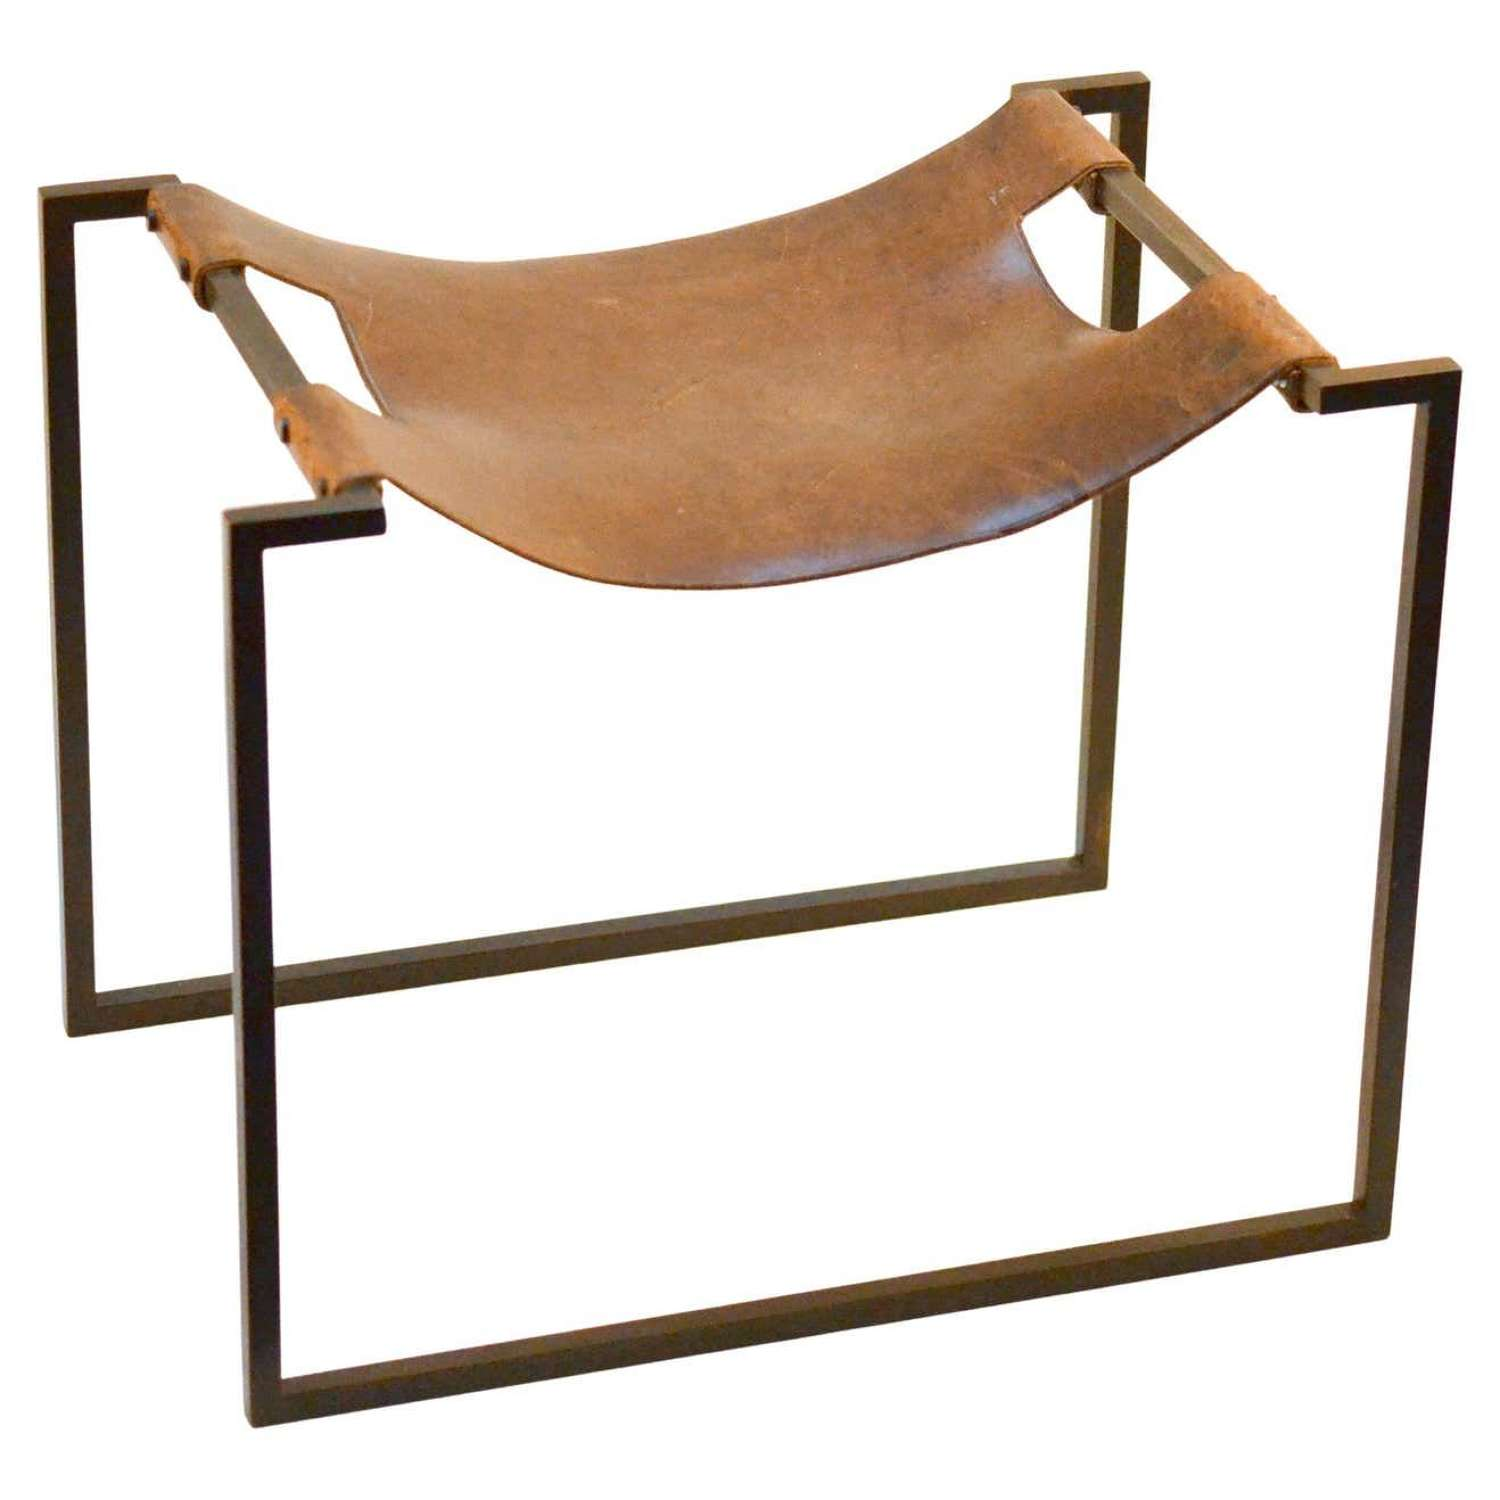 Modernist Wrought Iron and Leather French Sling Stool